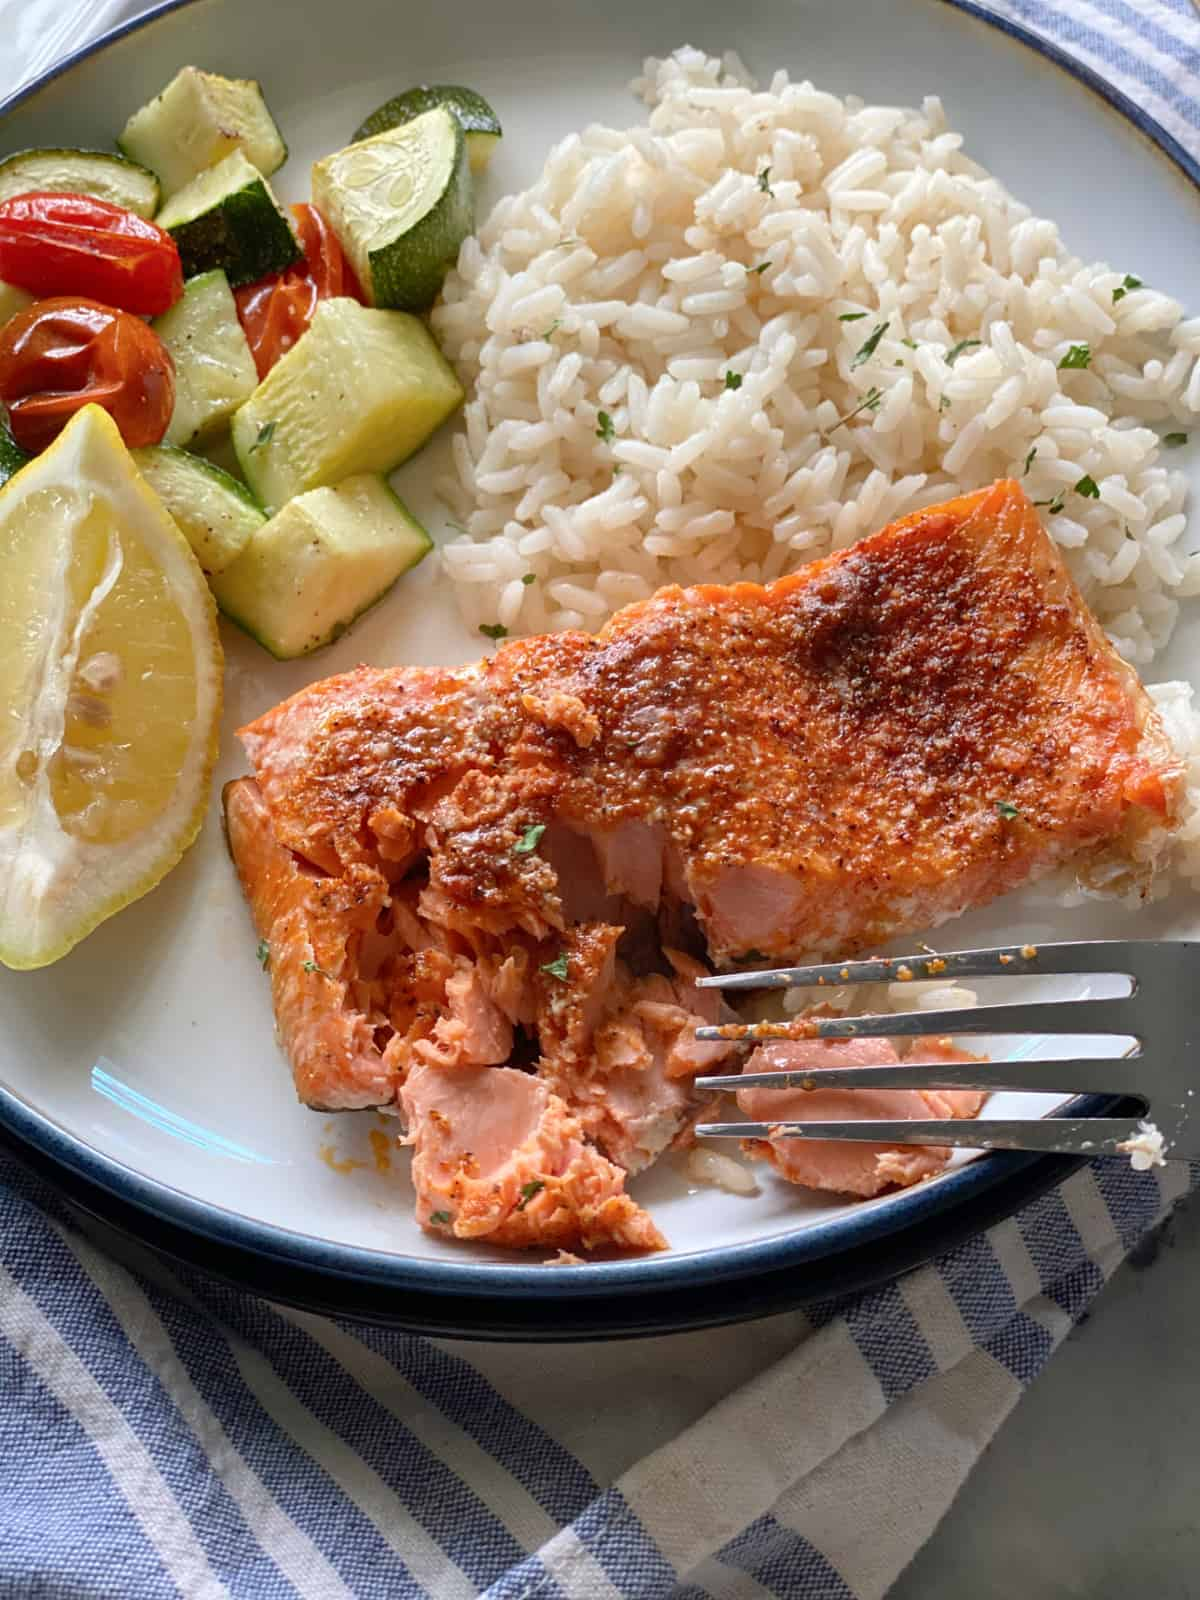 White plate filled with white rice, zucchini, tomatoes, a lemon wedge and a fork flaking cooking salmon.